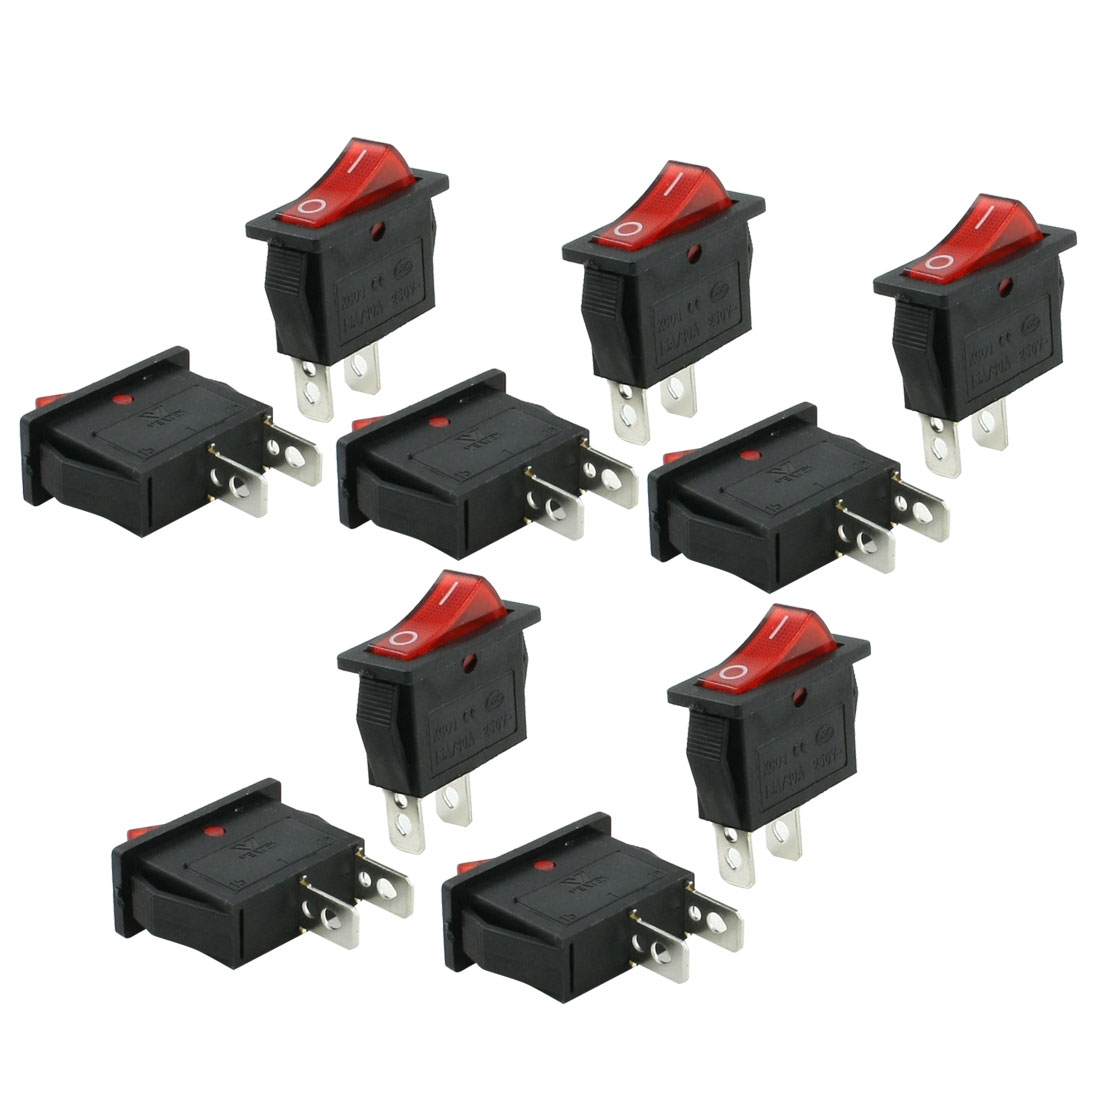 10 Pcs Panel Mount Red Light Lamp SPST Rocker Switch 16A/30A 250VAC